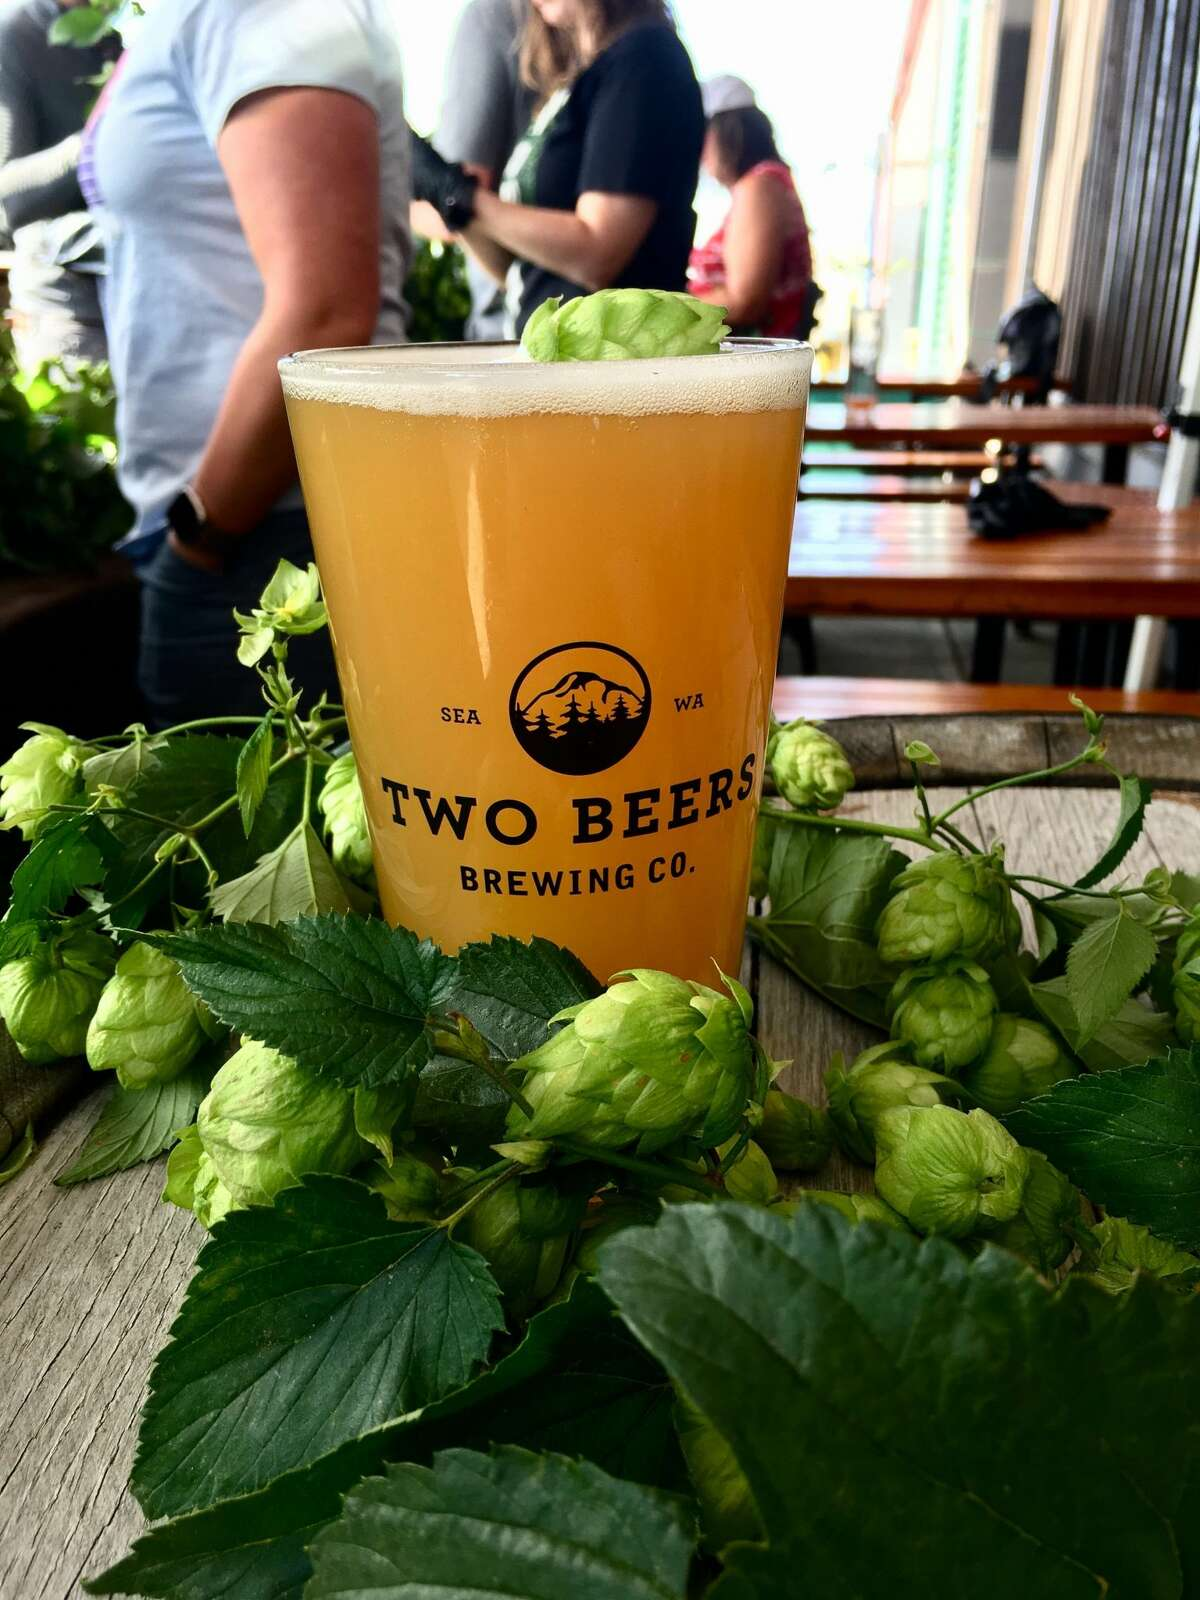 Two Beers Brewing Co, located at 4700 Ohio Ave. S., in Seattle, WA.